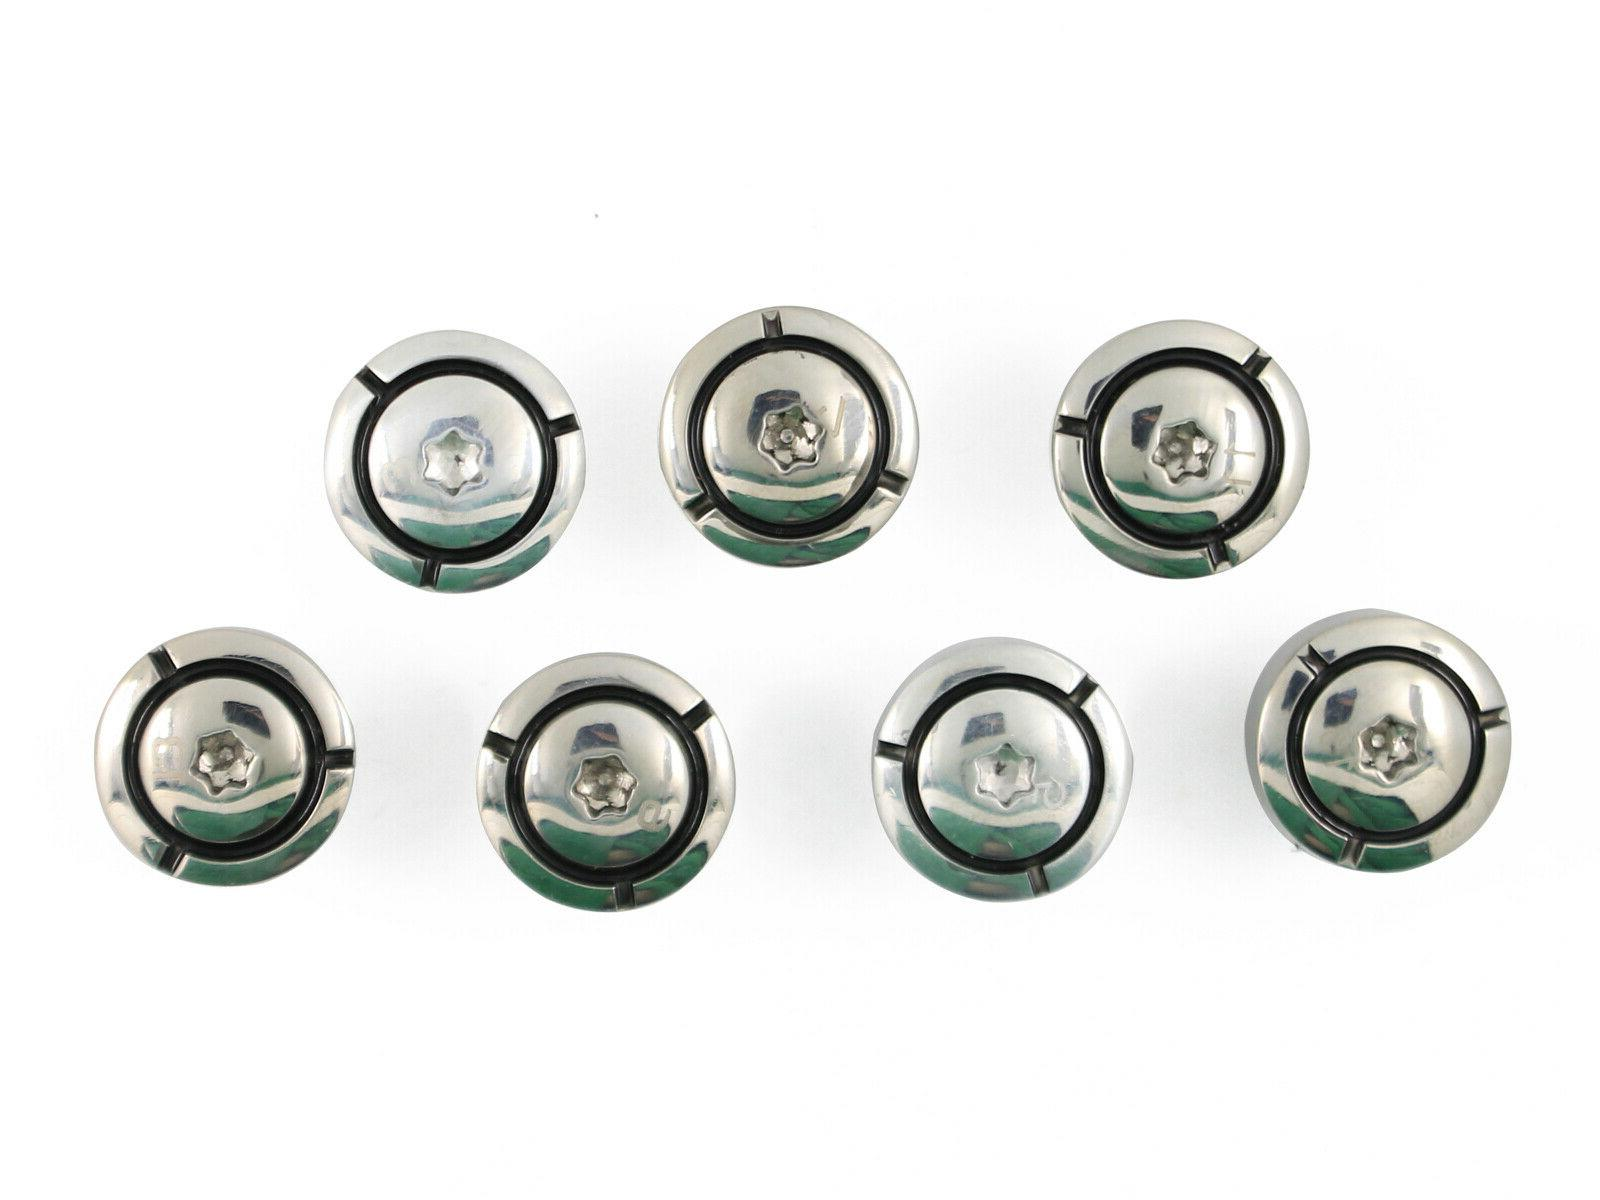 7 pcs golf weights kit for callaway